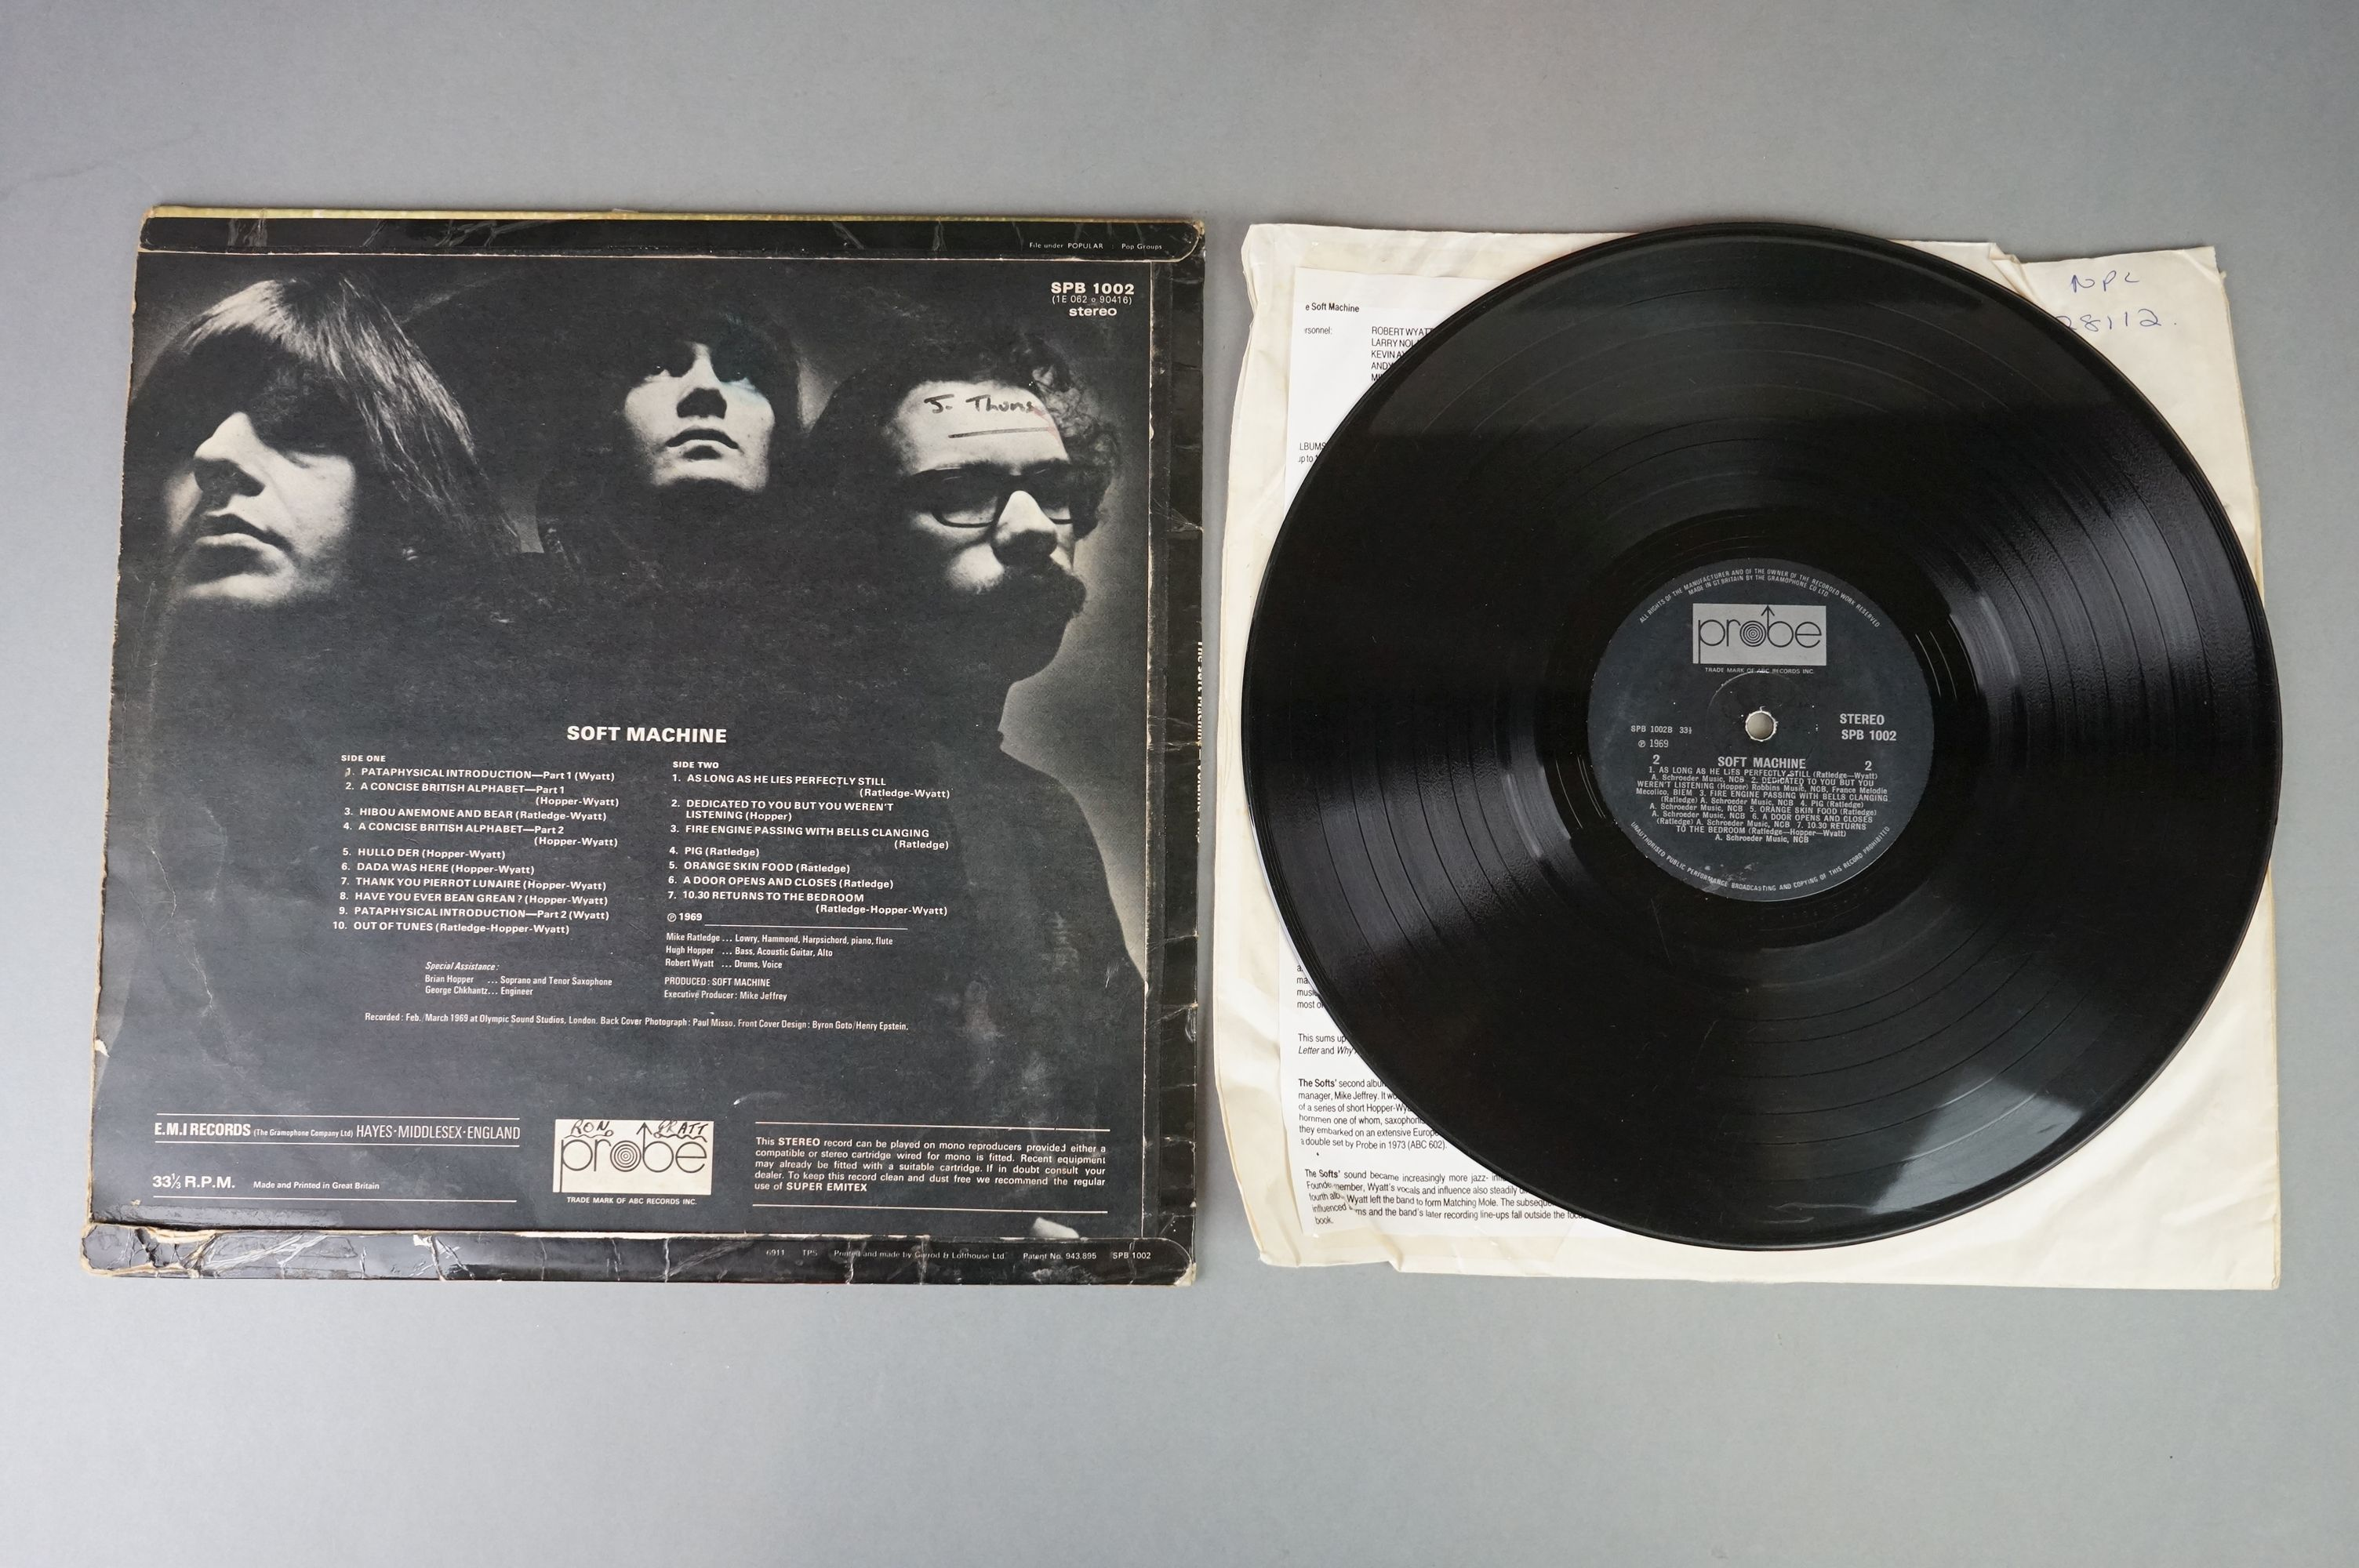 Vinyl - Two Soft Machine vinyl LP's to include Softs (EMI Records SHSP 4056), Volume Two (Probe - Image 3 of 9